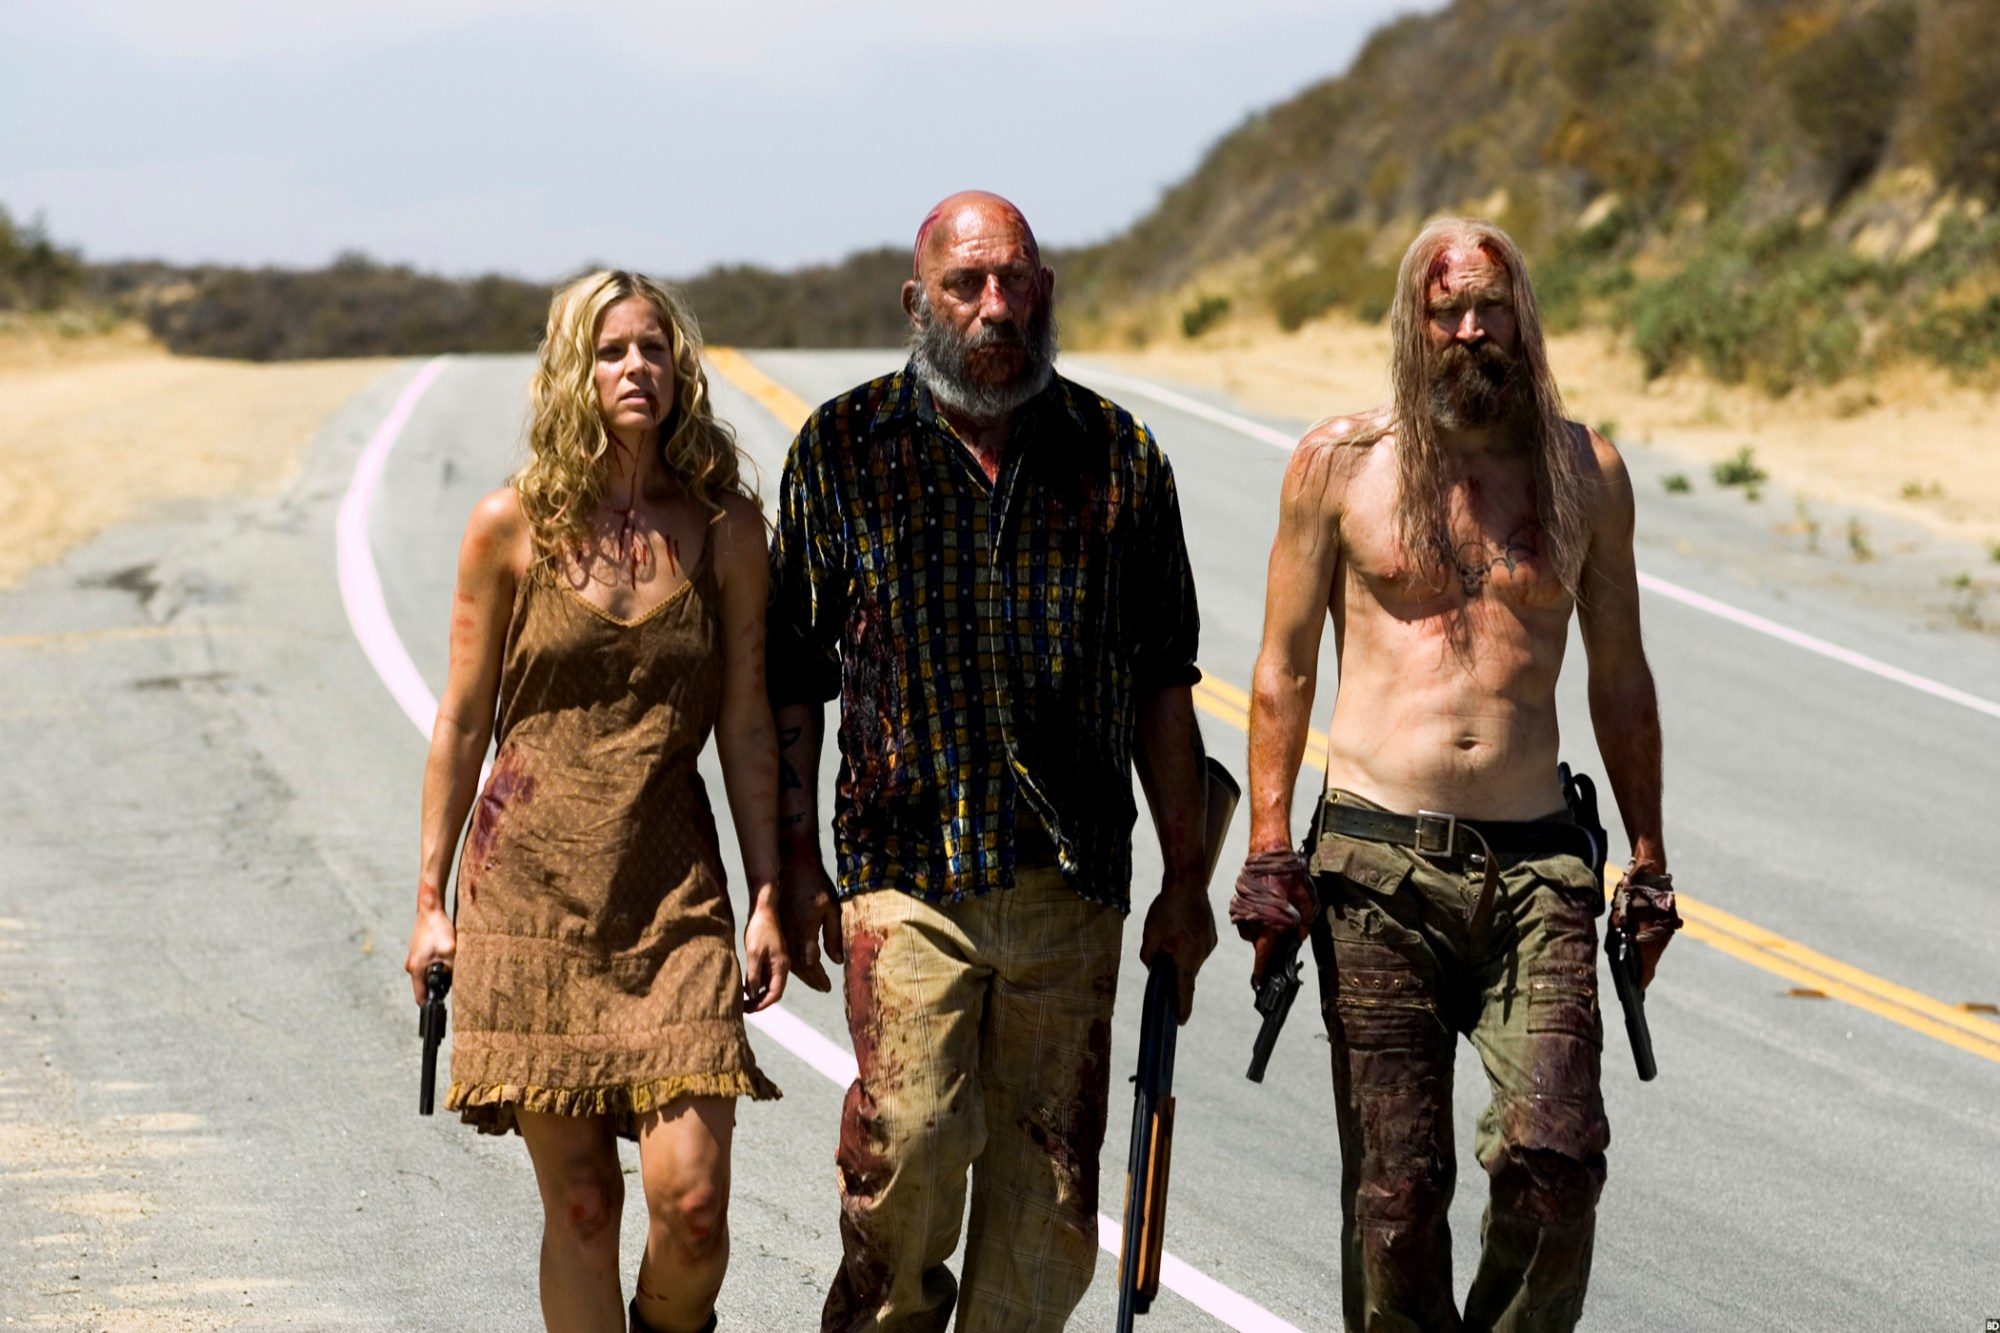 https://i0.wp.com/bloody-disgusting.com/wp-content/uploads/2017/10/the-Devils-Rejects-Family.jpg?w=2000